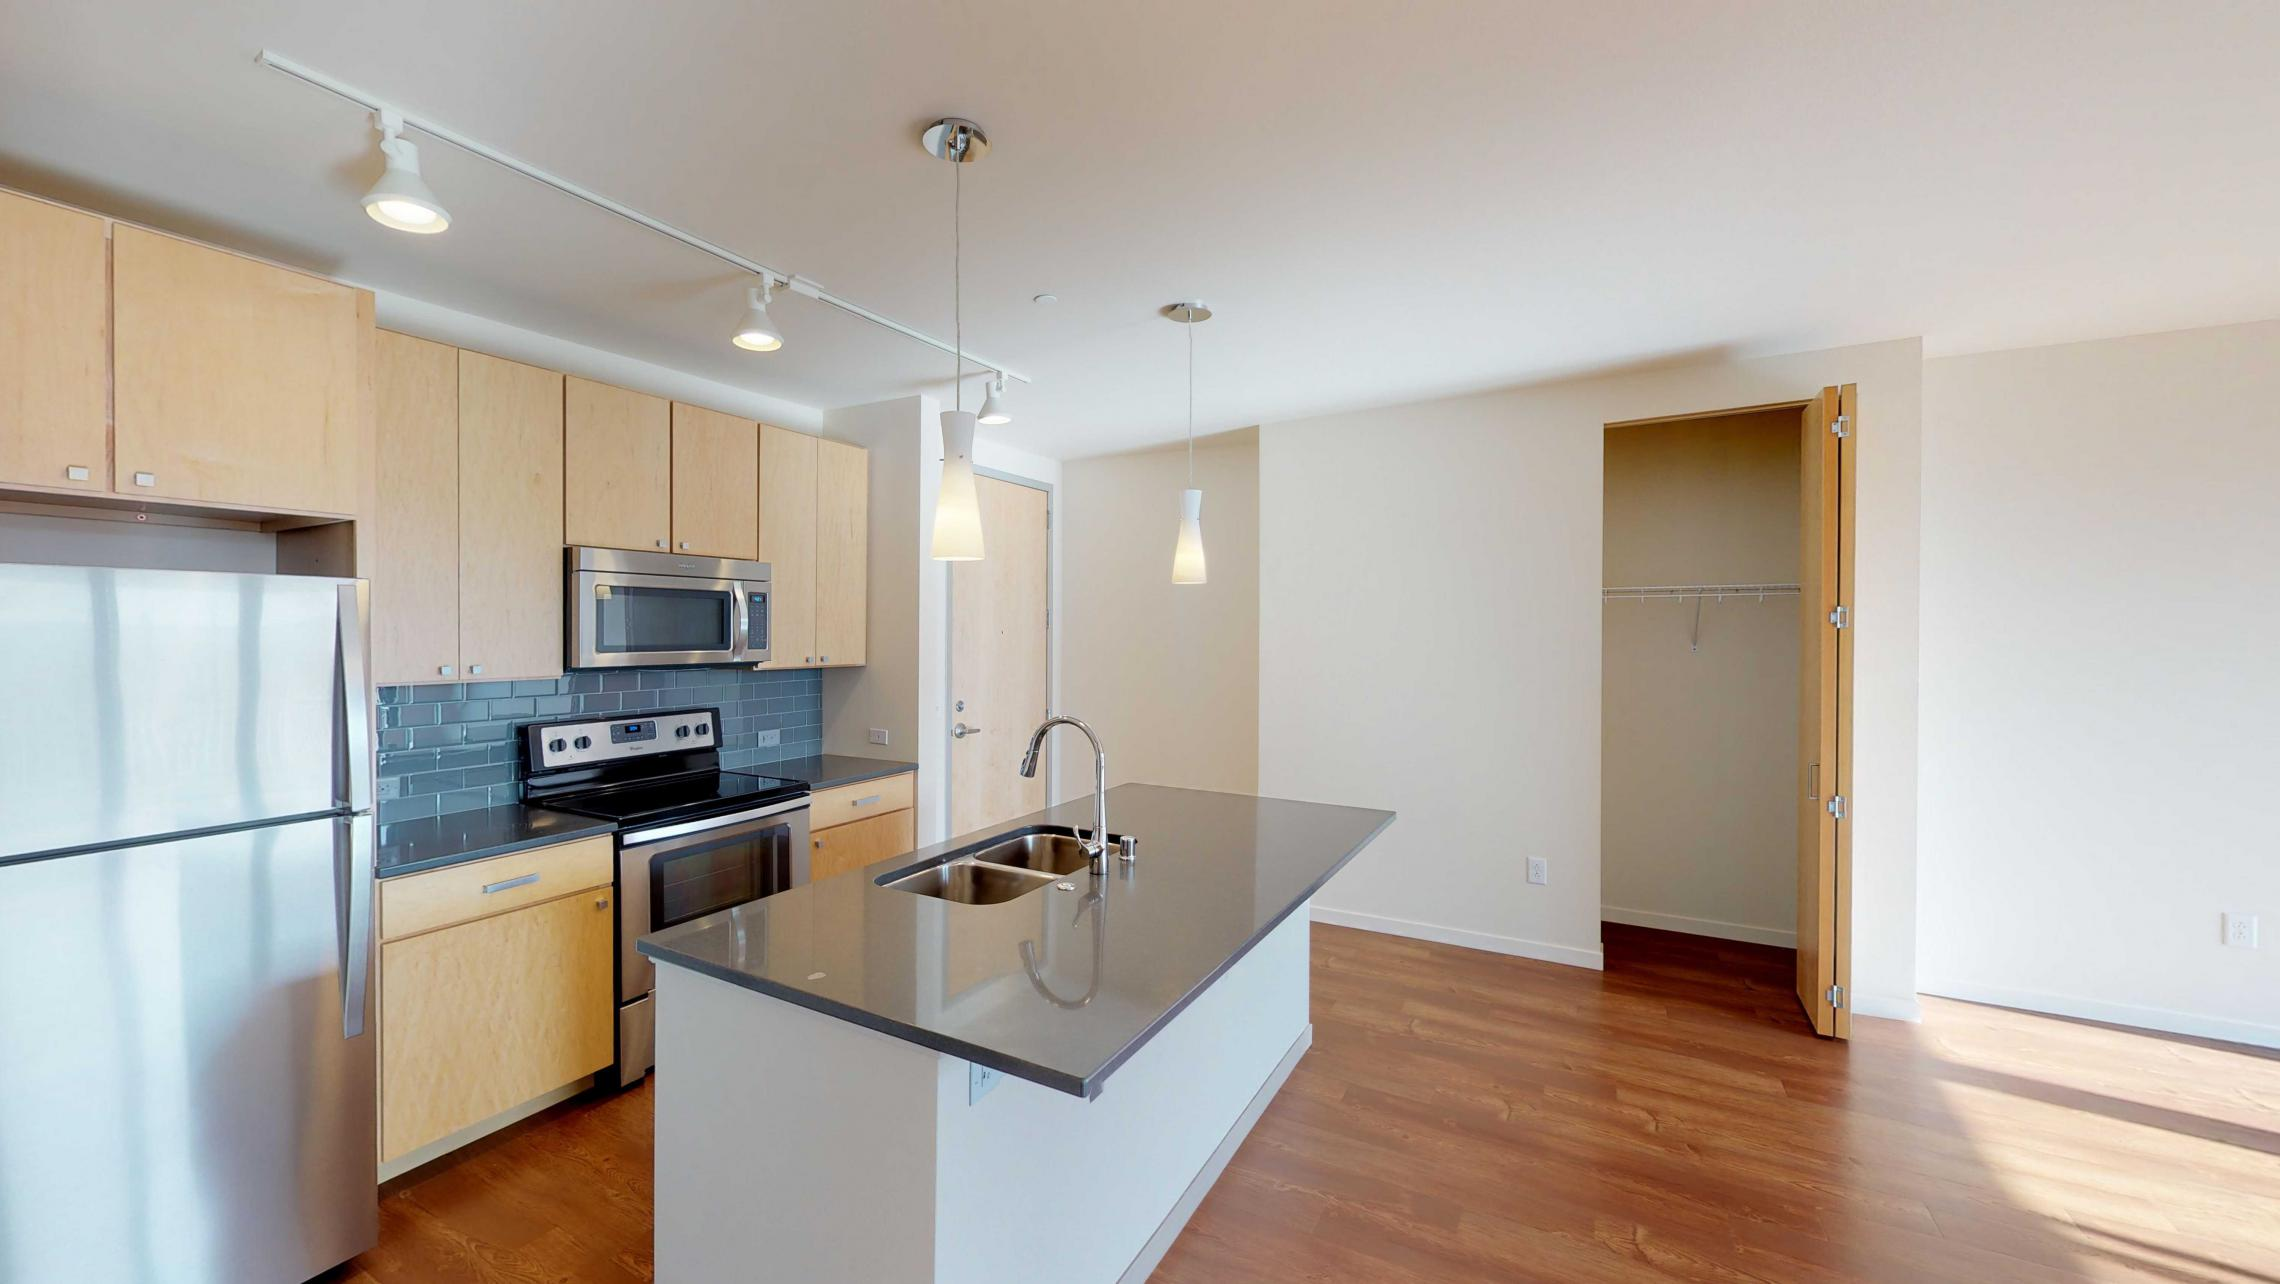 Nine-Line-Apartment-520-kitchen-upscale-modern-luxury-design-madison-lifestyle-balcony-downtown-capitol.jpg